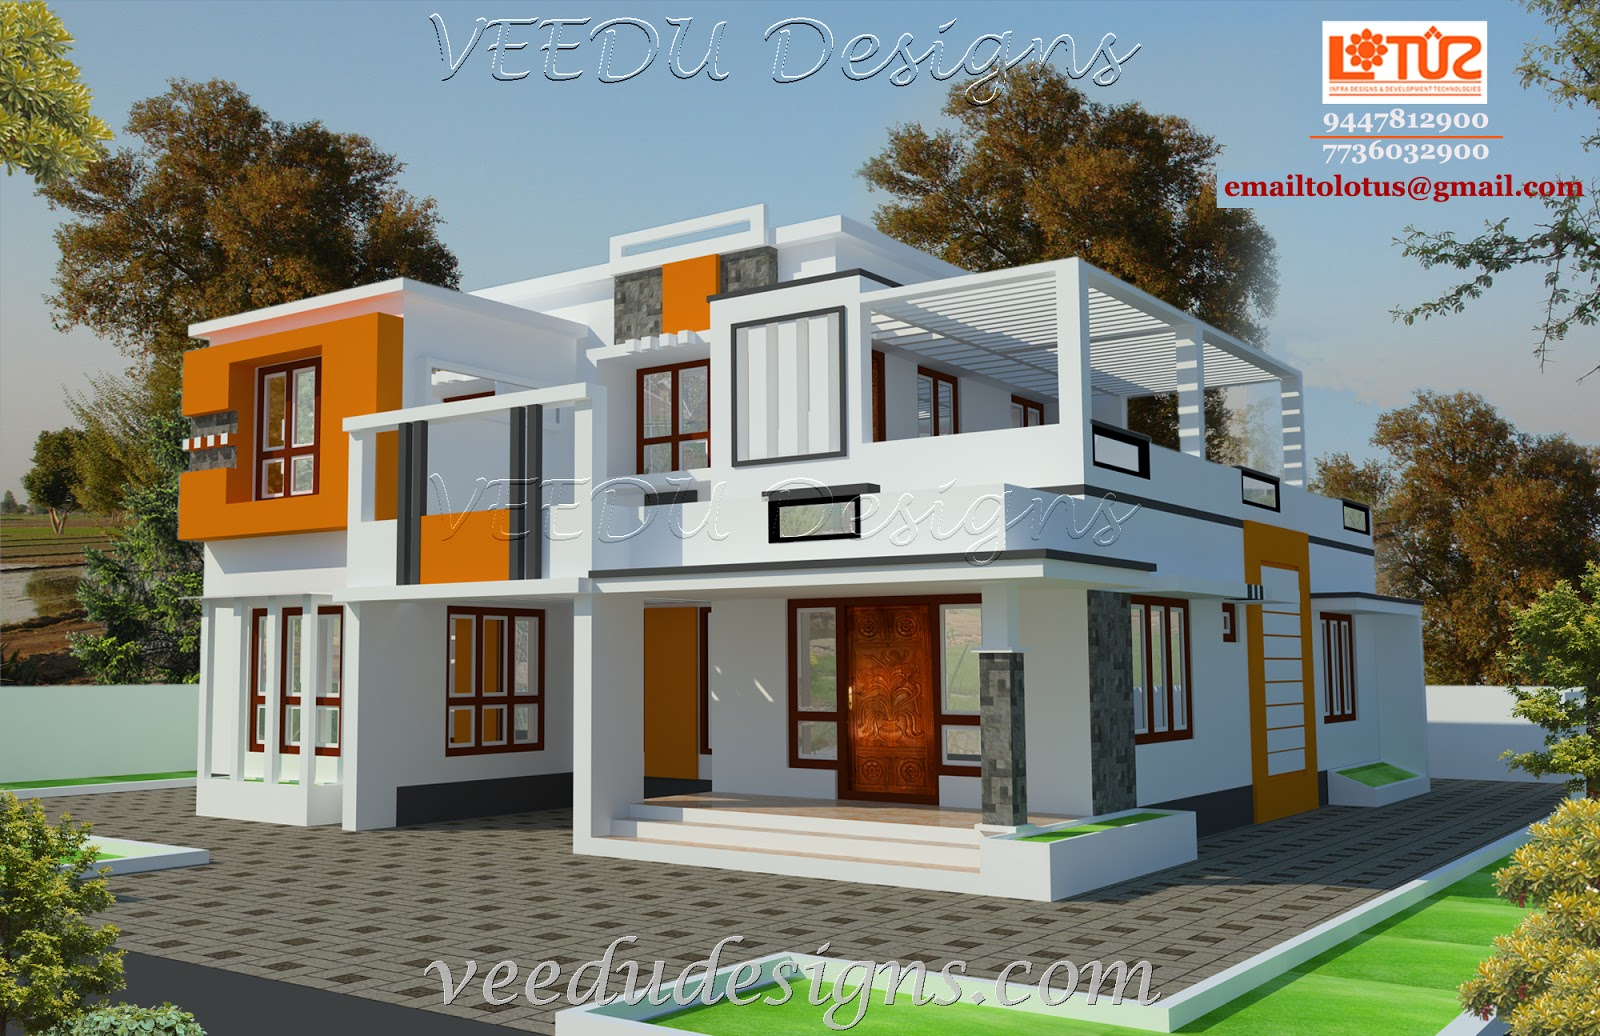 Veedu designs kerala home designs for Design your home